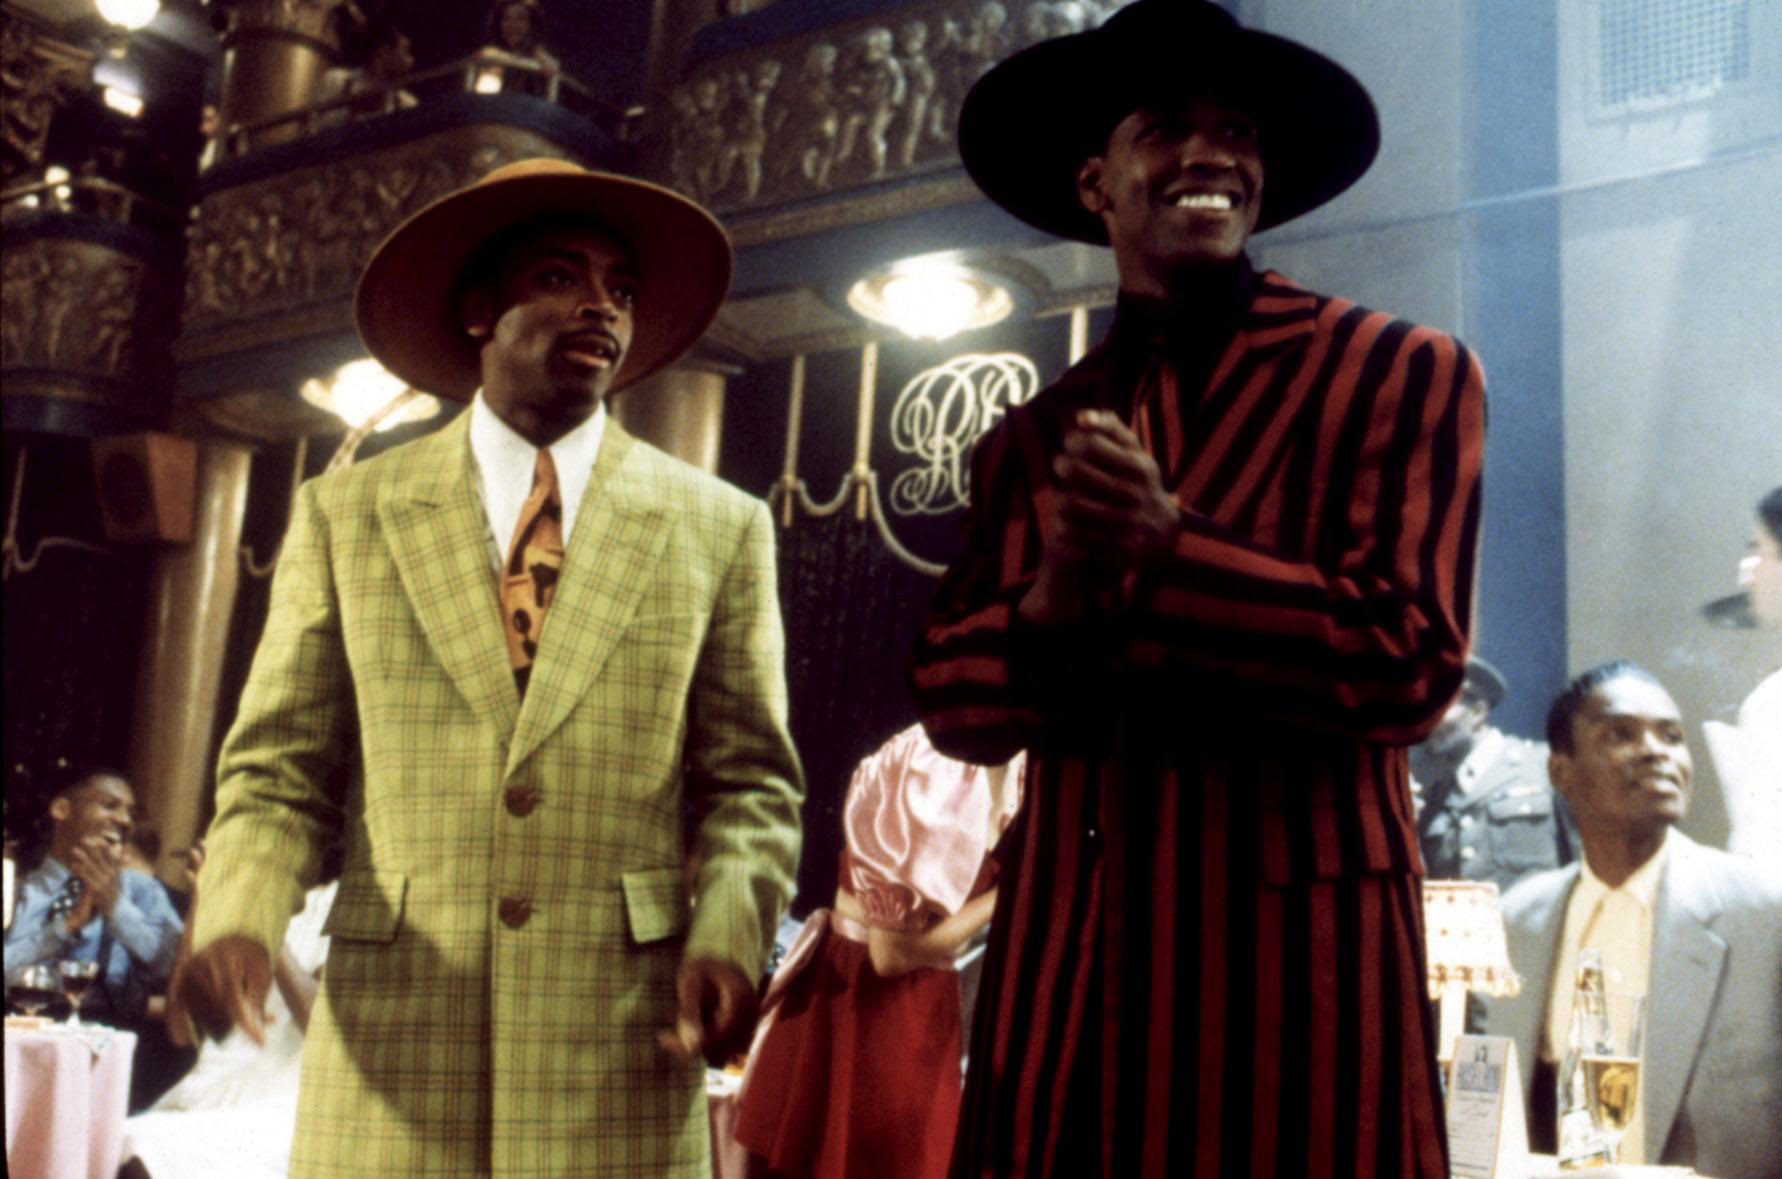 Spike Lee and Denzel Washington wearing zoot suits and matching hats in a scene from Malcolm X